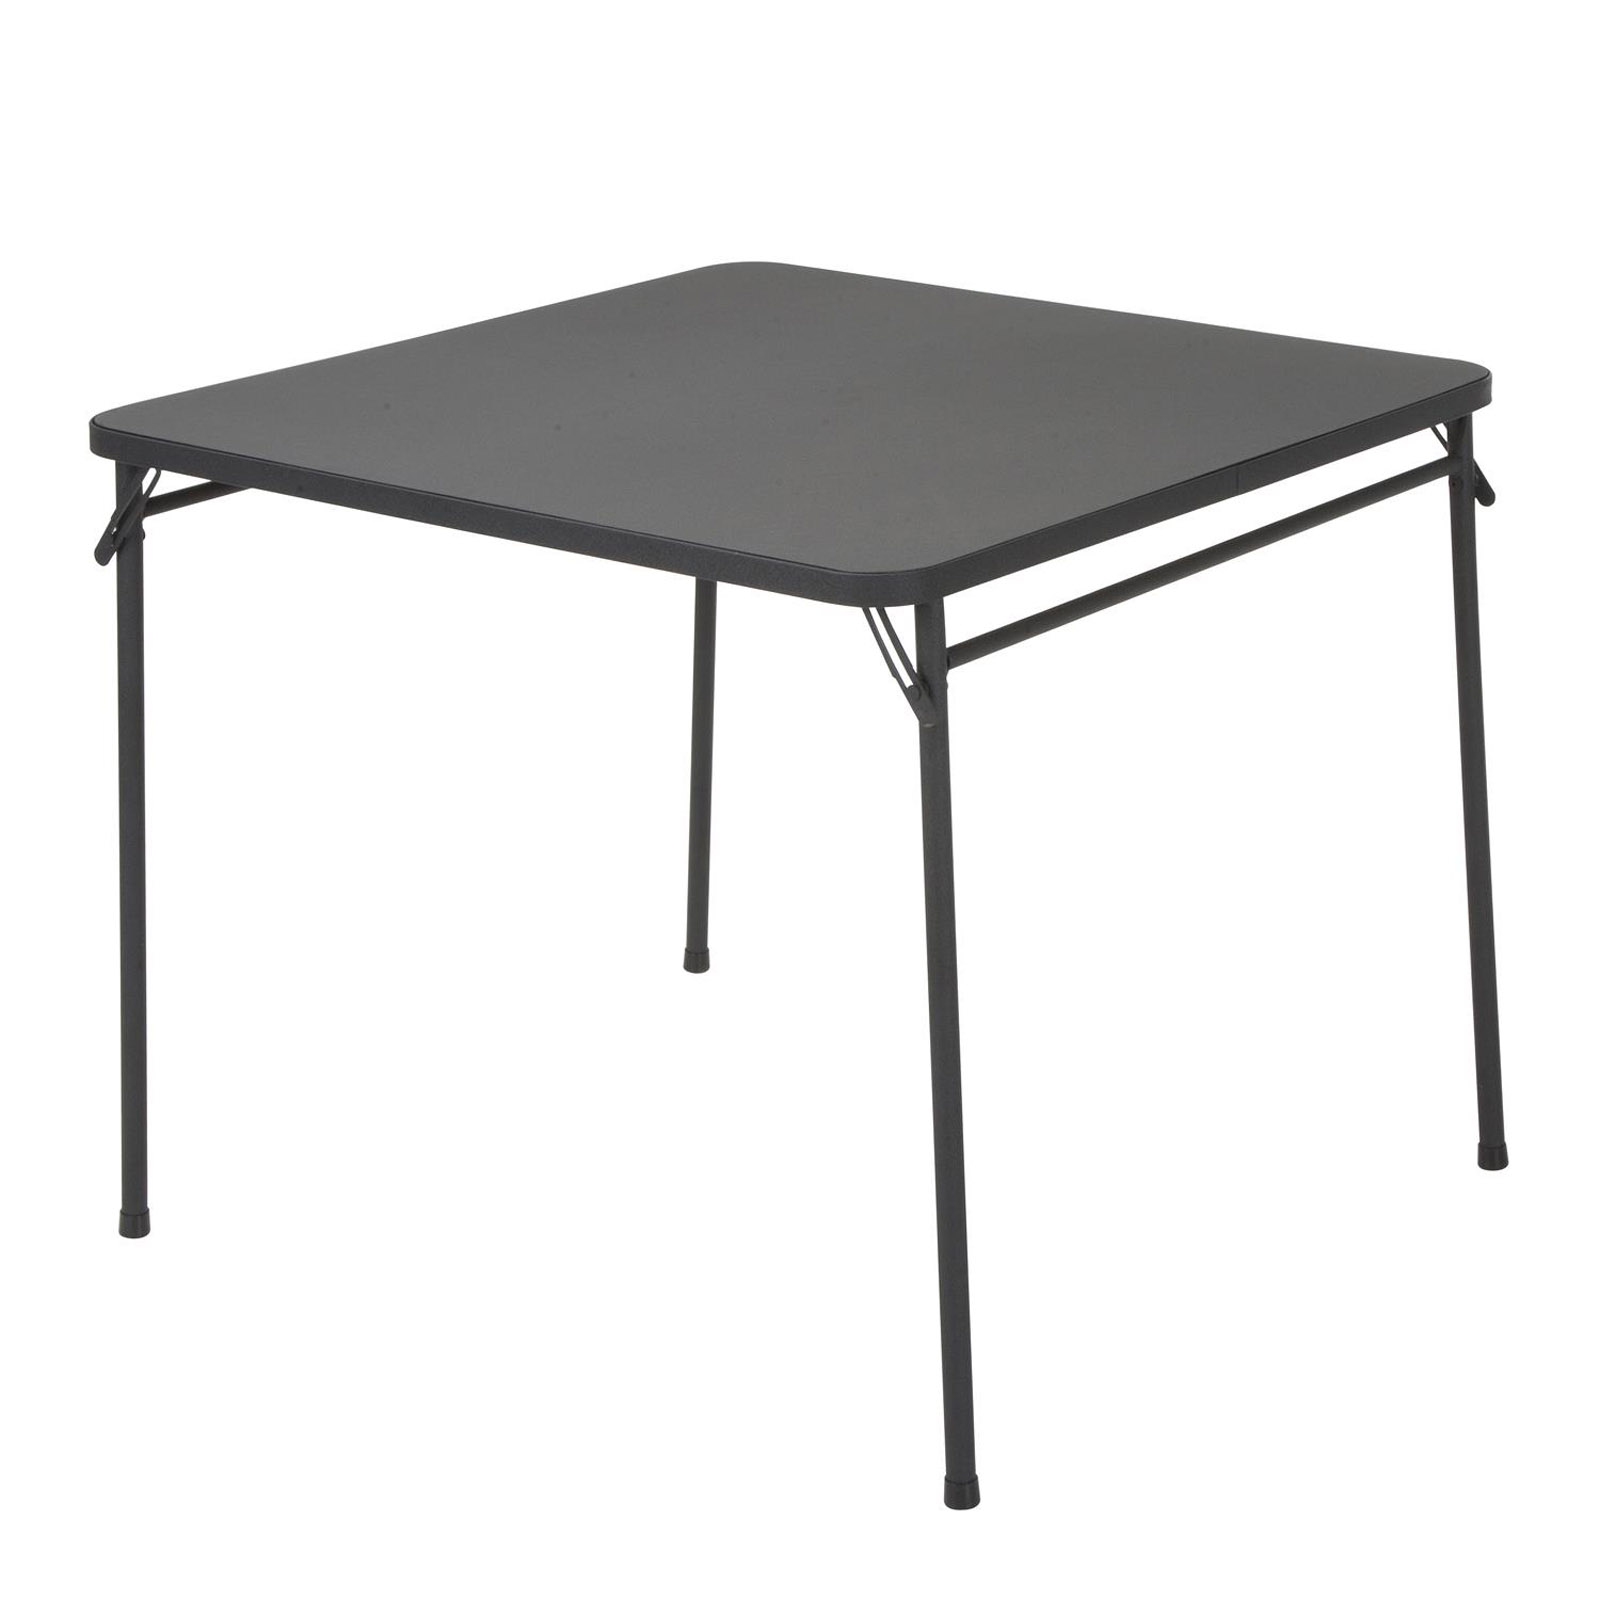 Folding Table Lightweight Folding Table Kmart